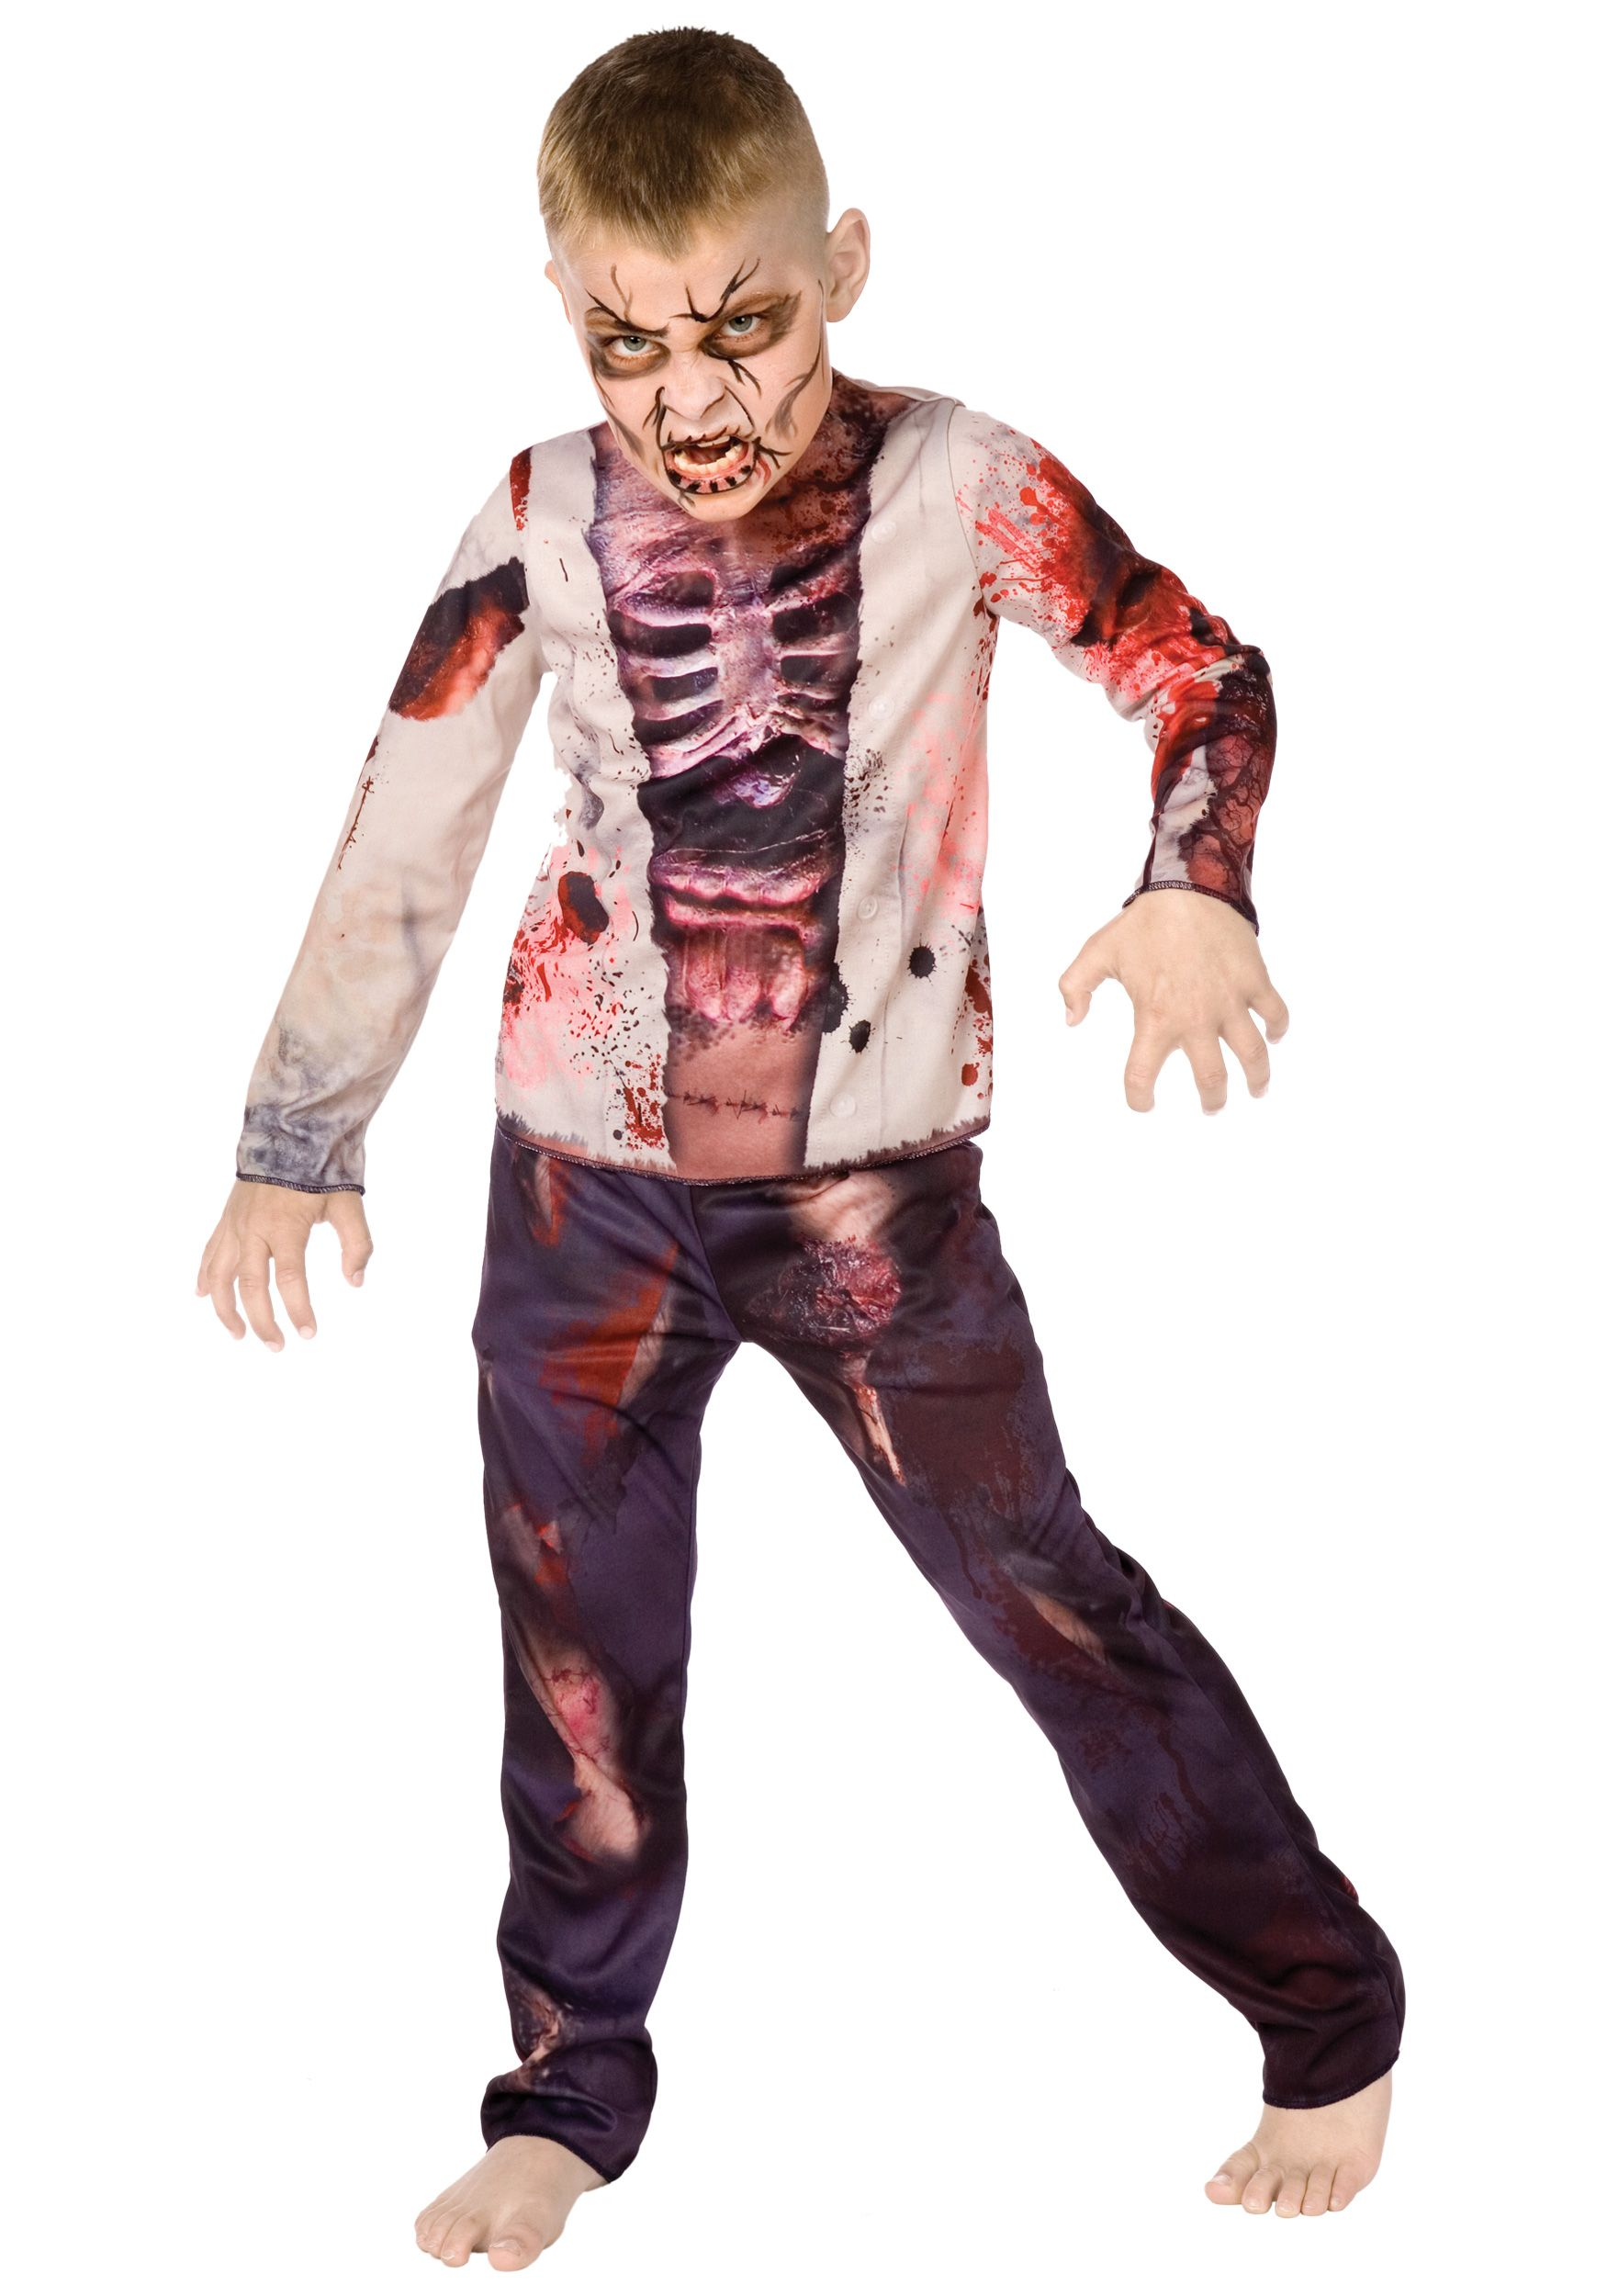 Boy Zombie Costume | Costumes, Scary kids costumes and Kids ...